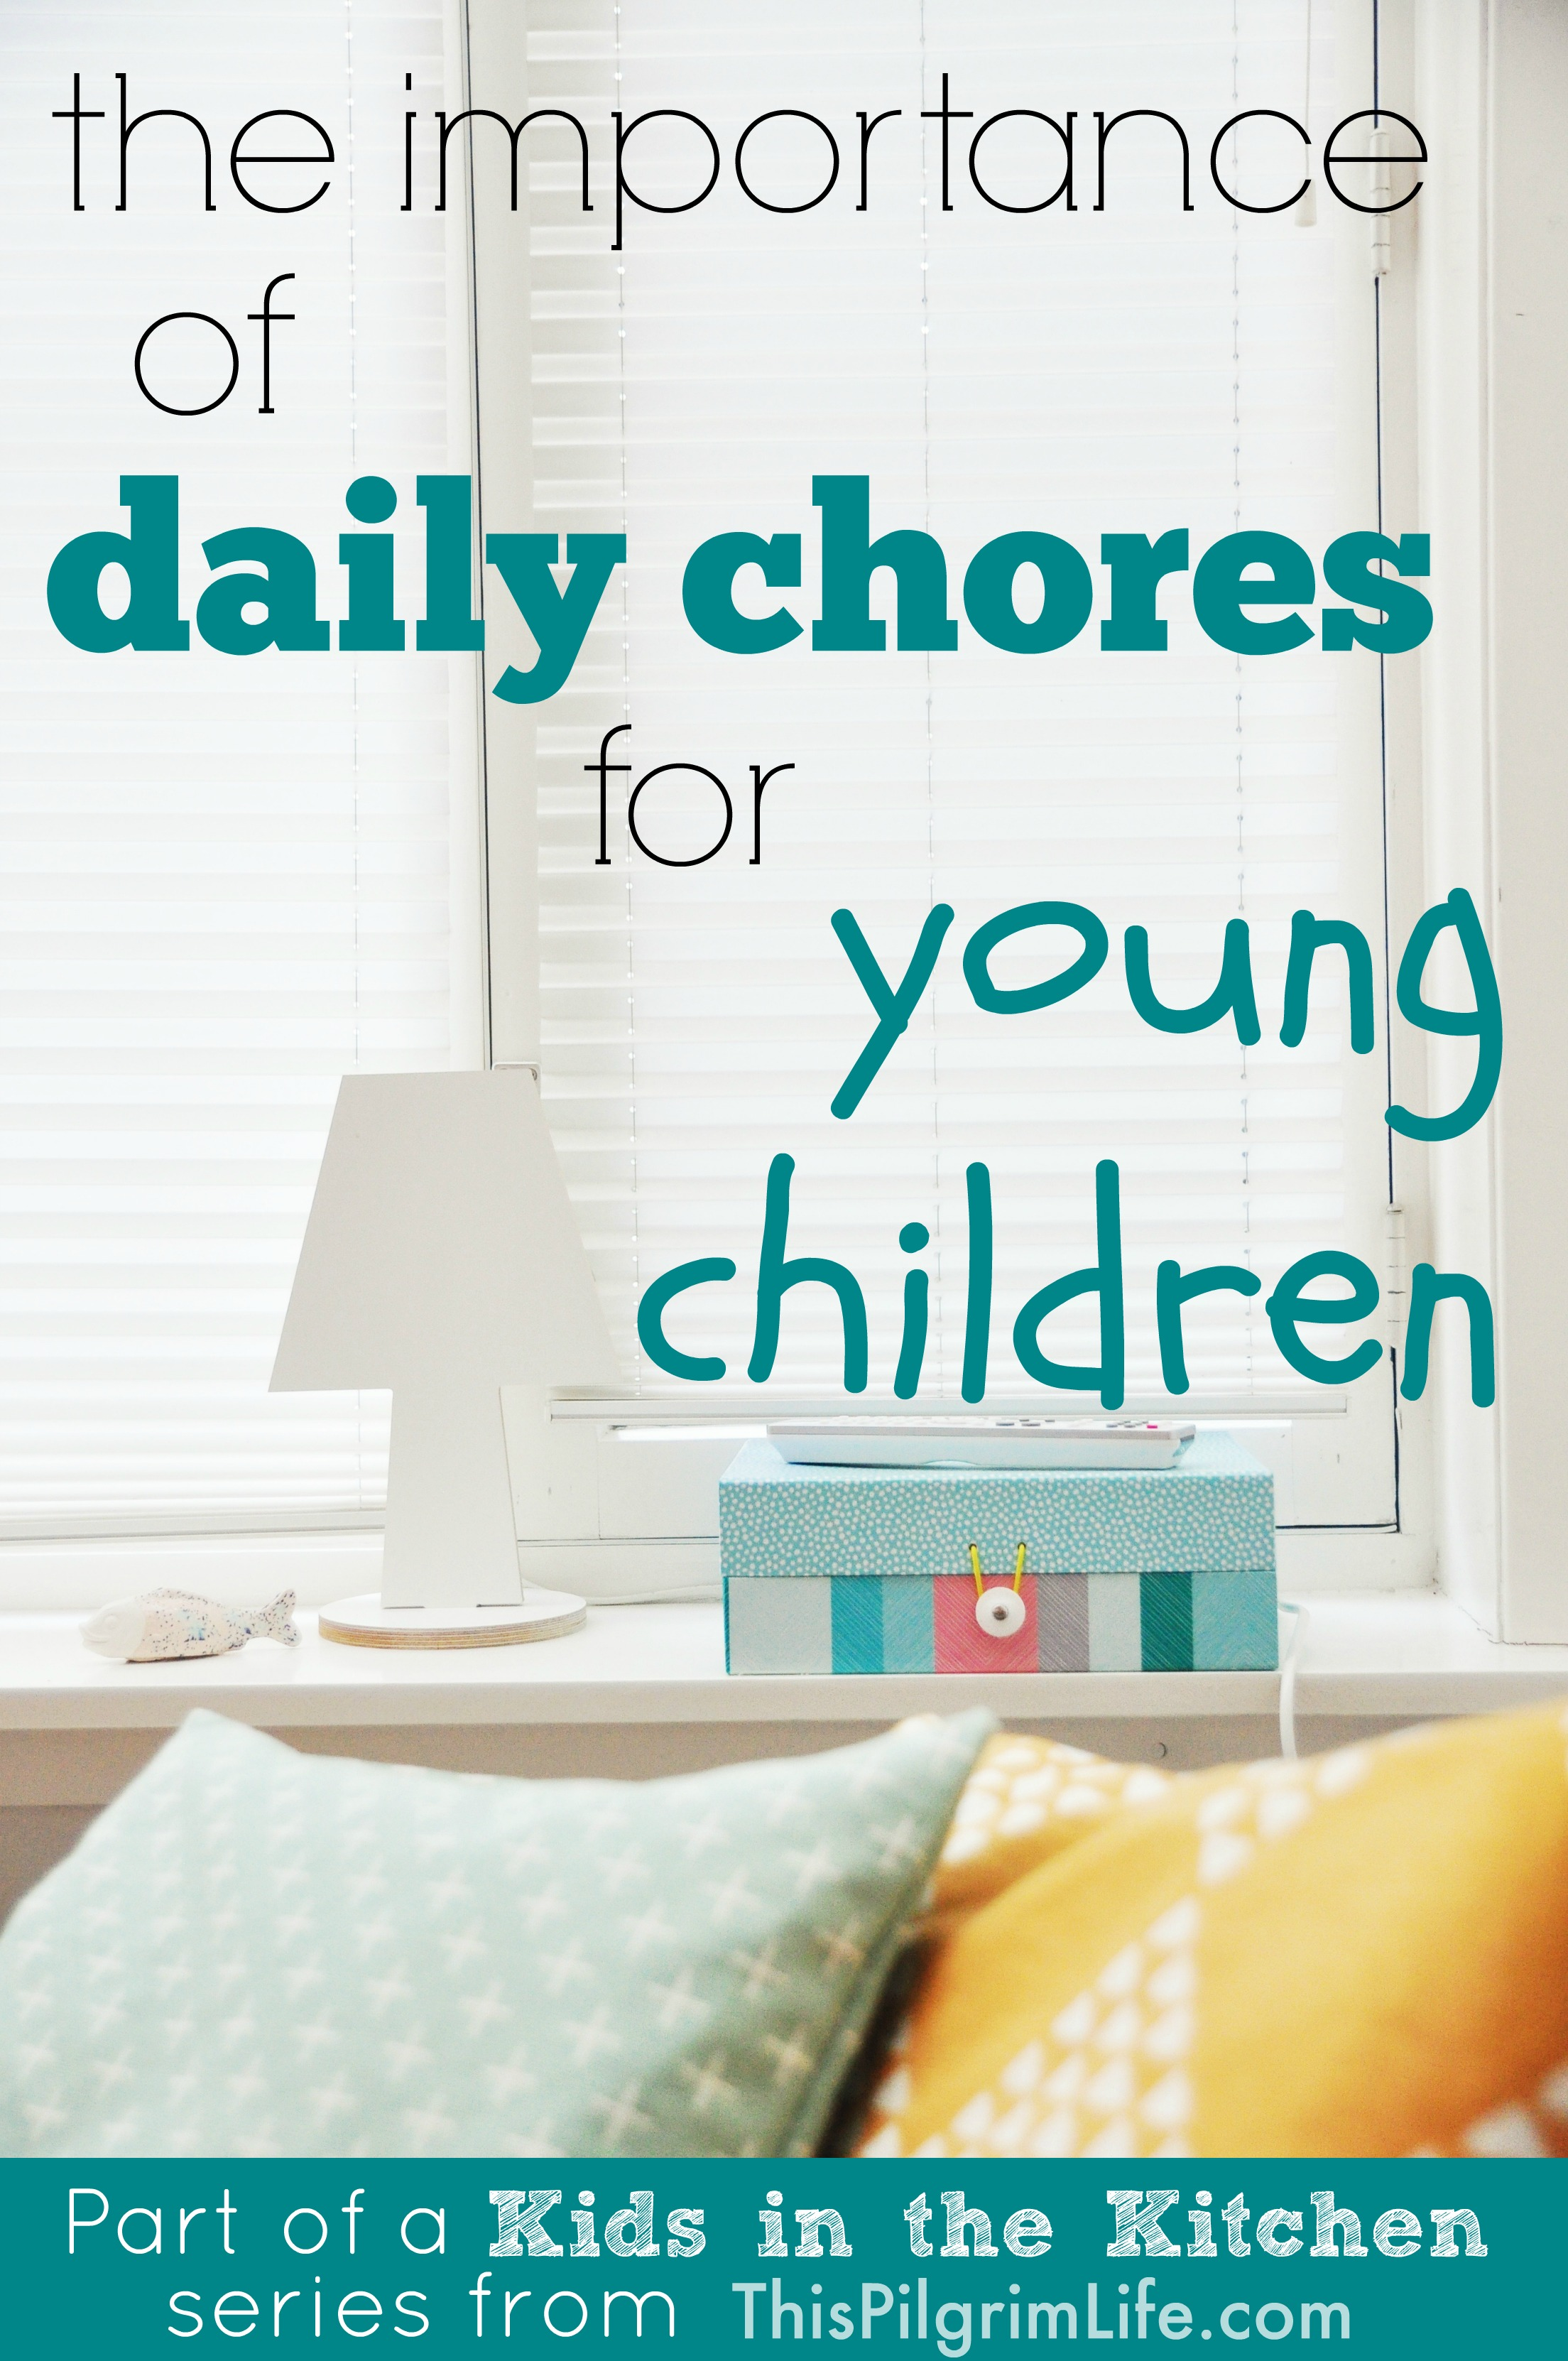 The Importance of Daily Chores for Young Children